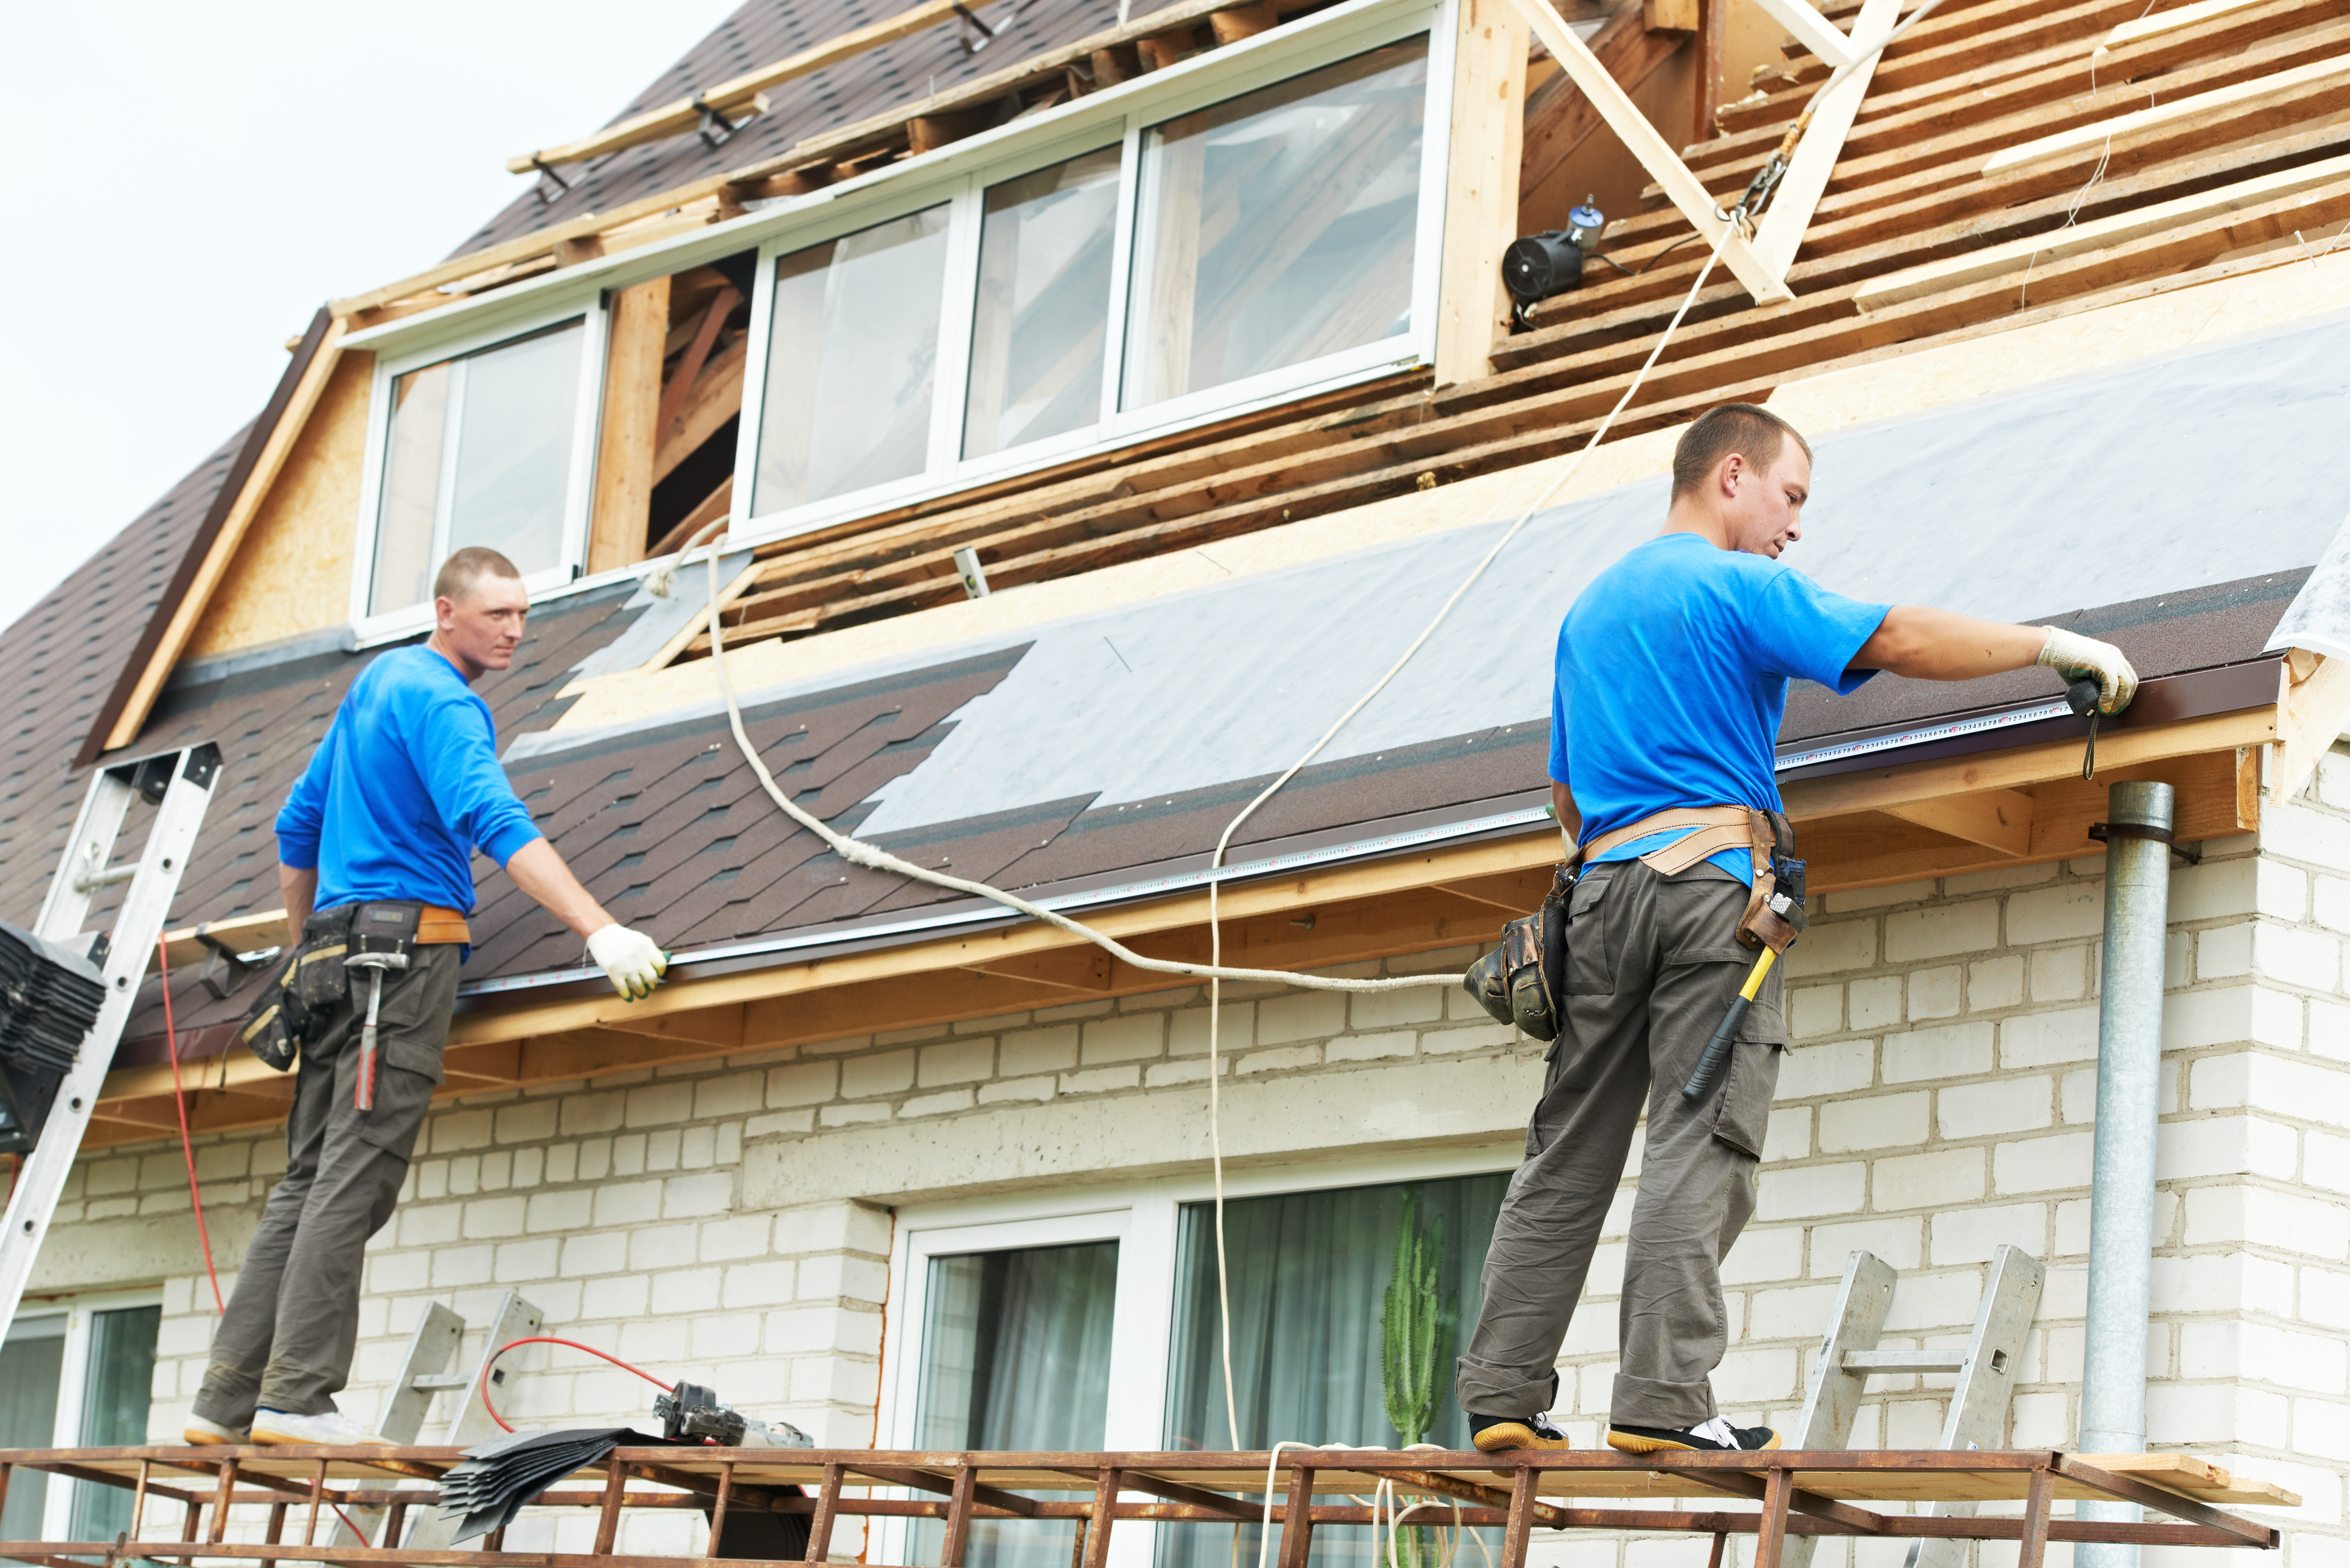 Re-roofing a house